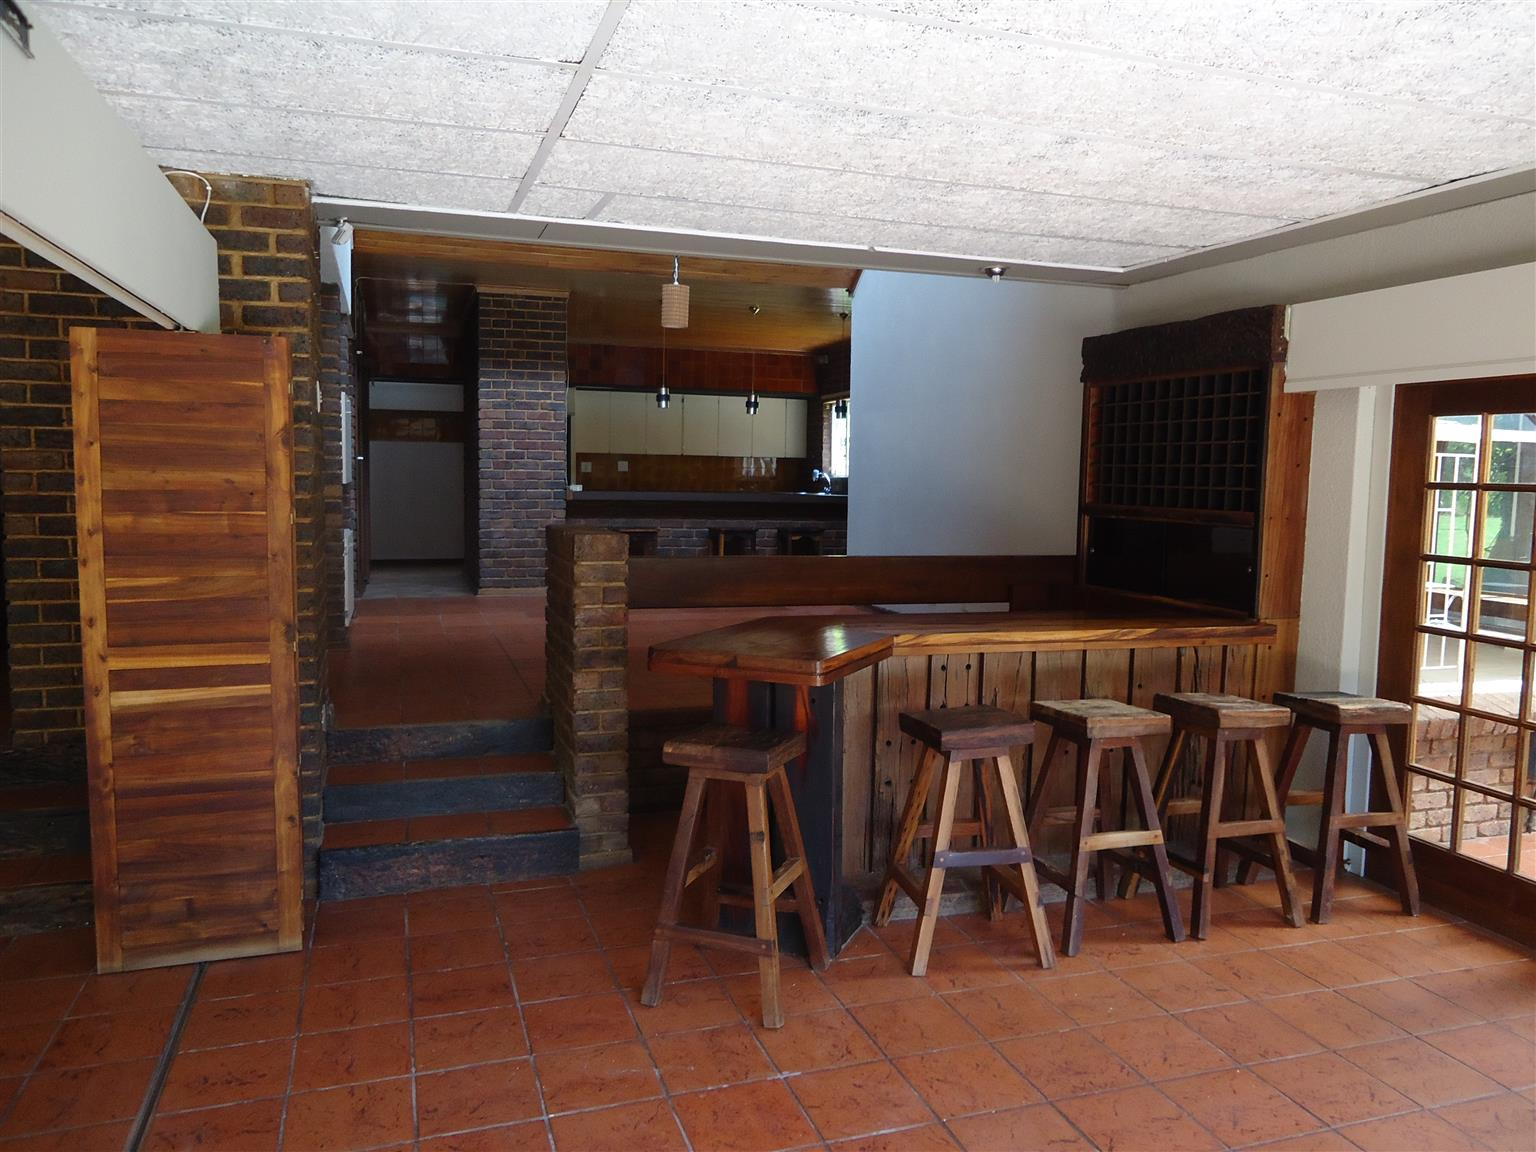 PRIVATE SELLER: Price reduced with R200 000:Buy an Executive house/property direct from owner in Gholfsig Middelburg. No commission to be paid!